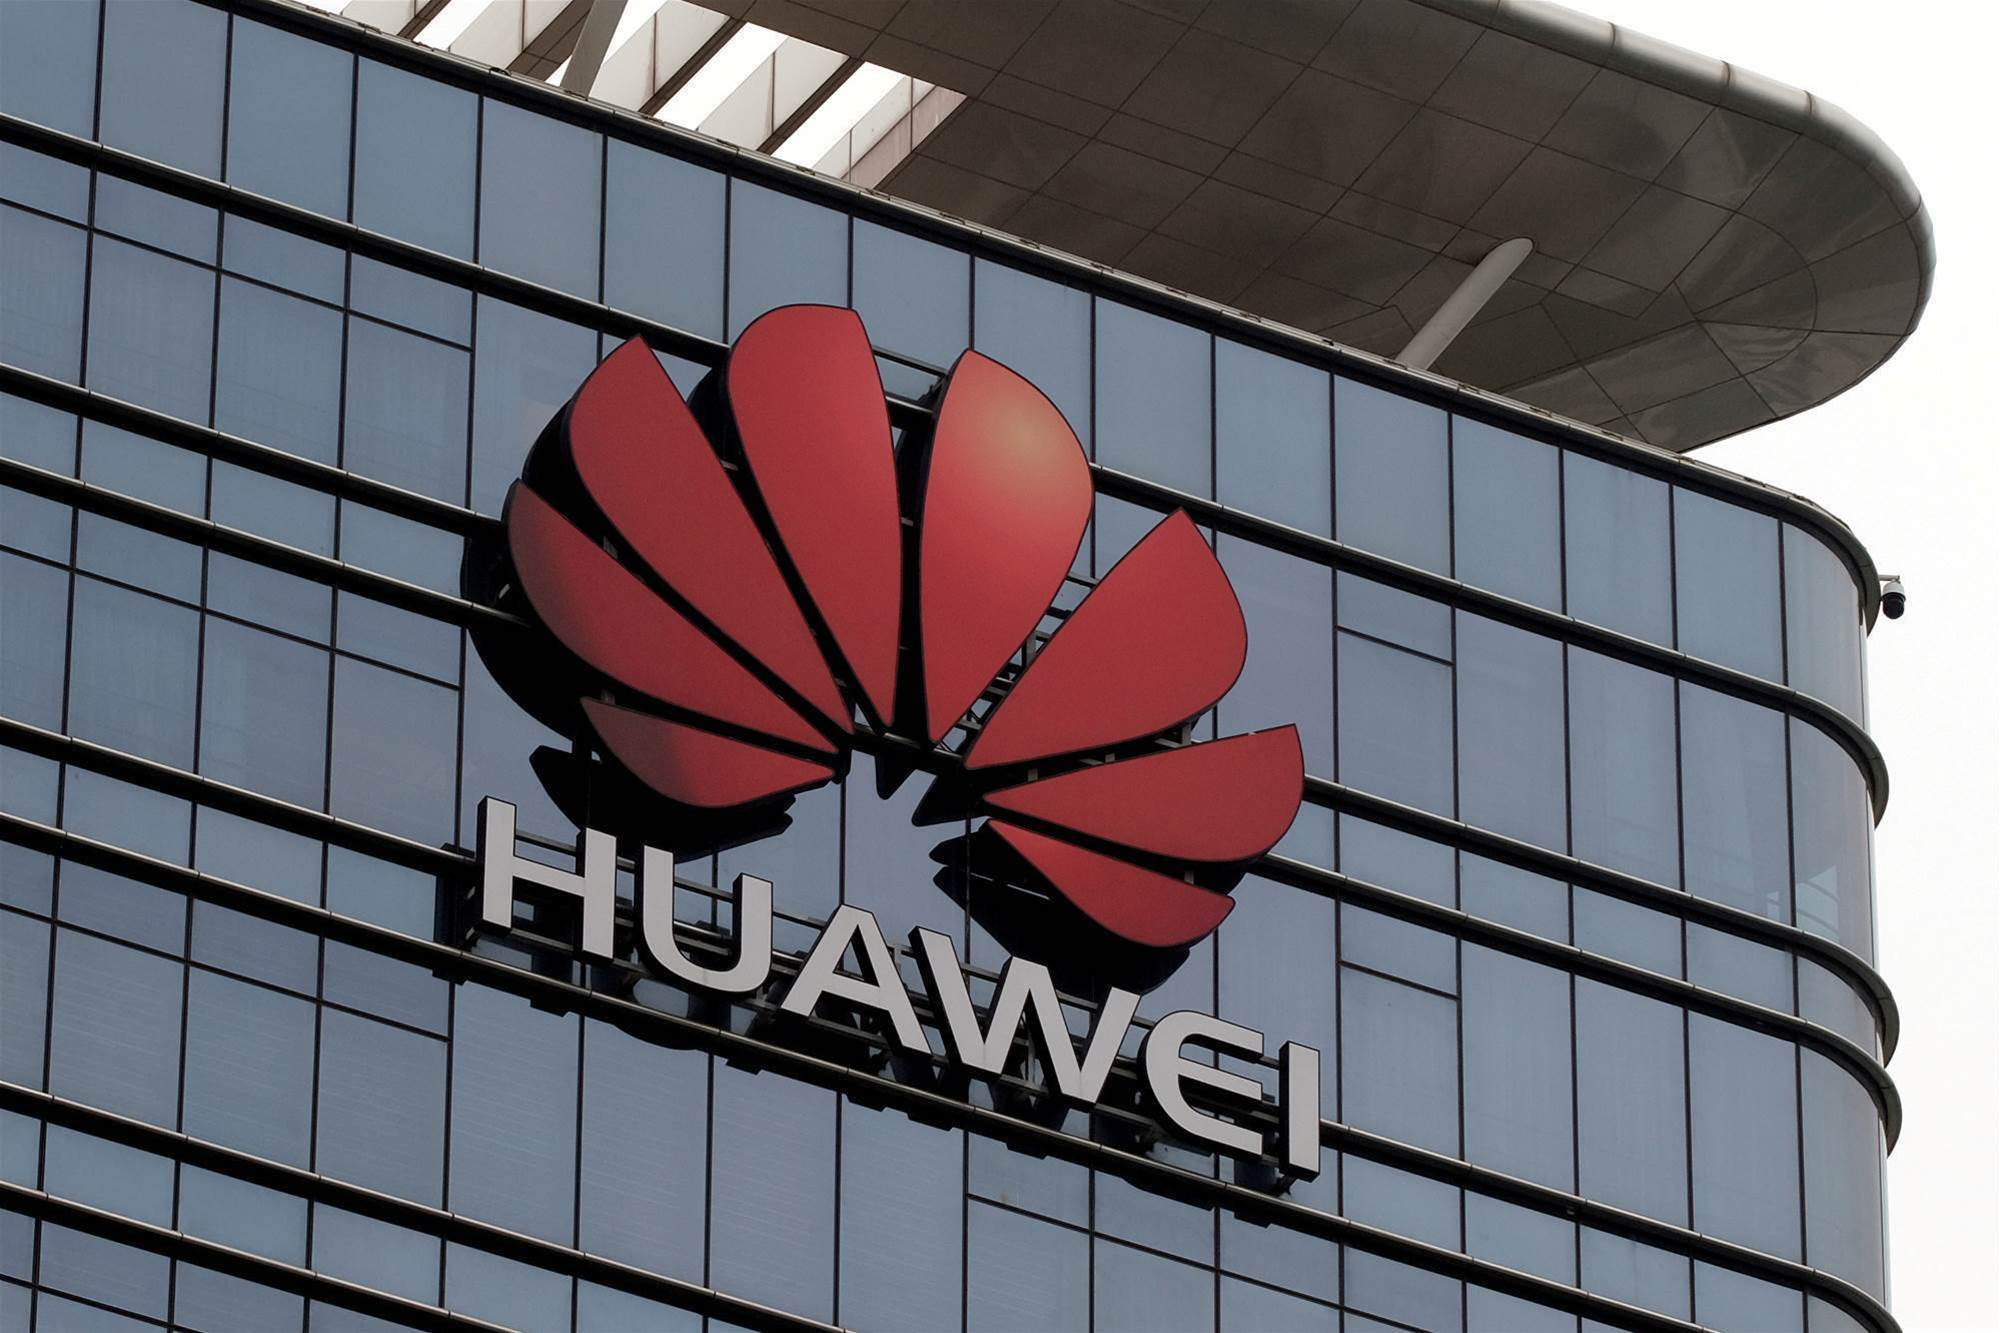 China urges UK not to discriminate against Huawei in 5G development